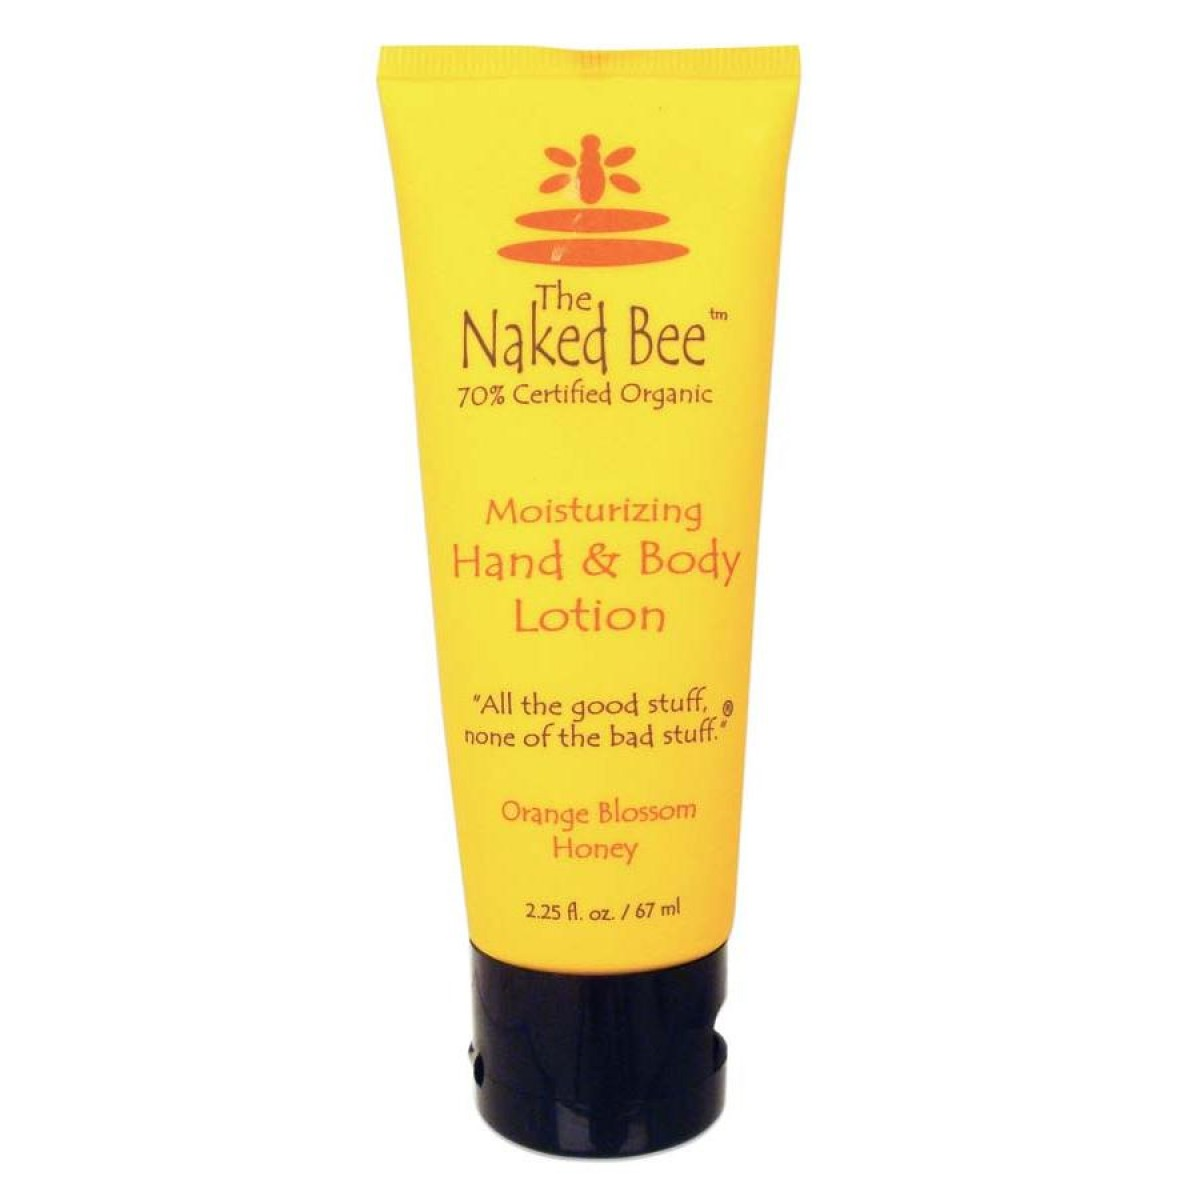 Orange Blossom Honey Hand and Body Lotion Tube